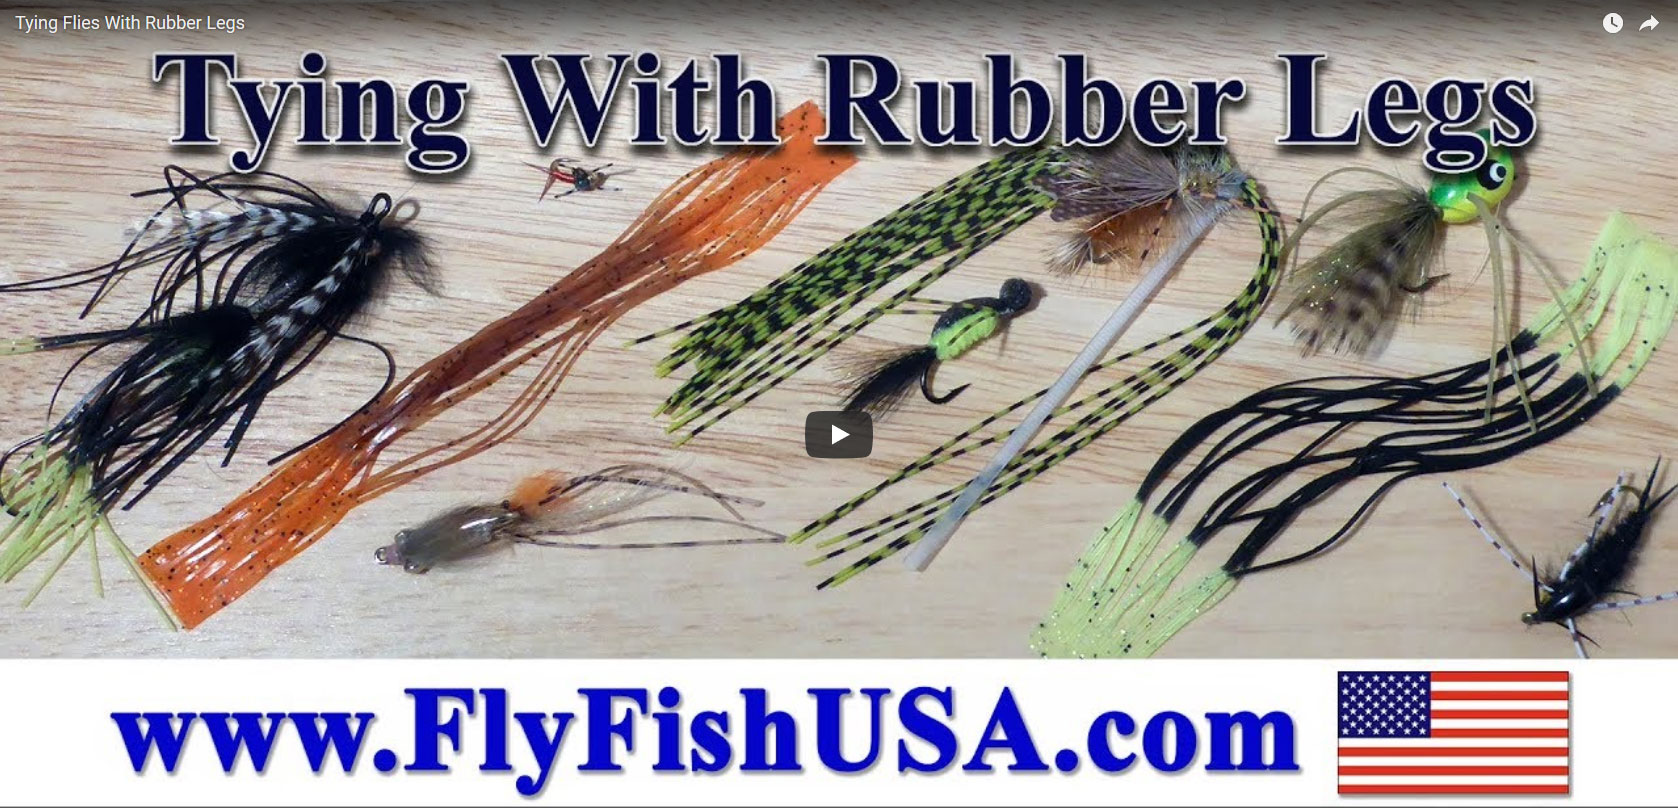 Tying Flies with Rubber Legs video